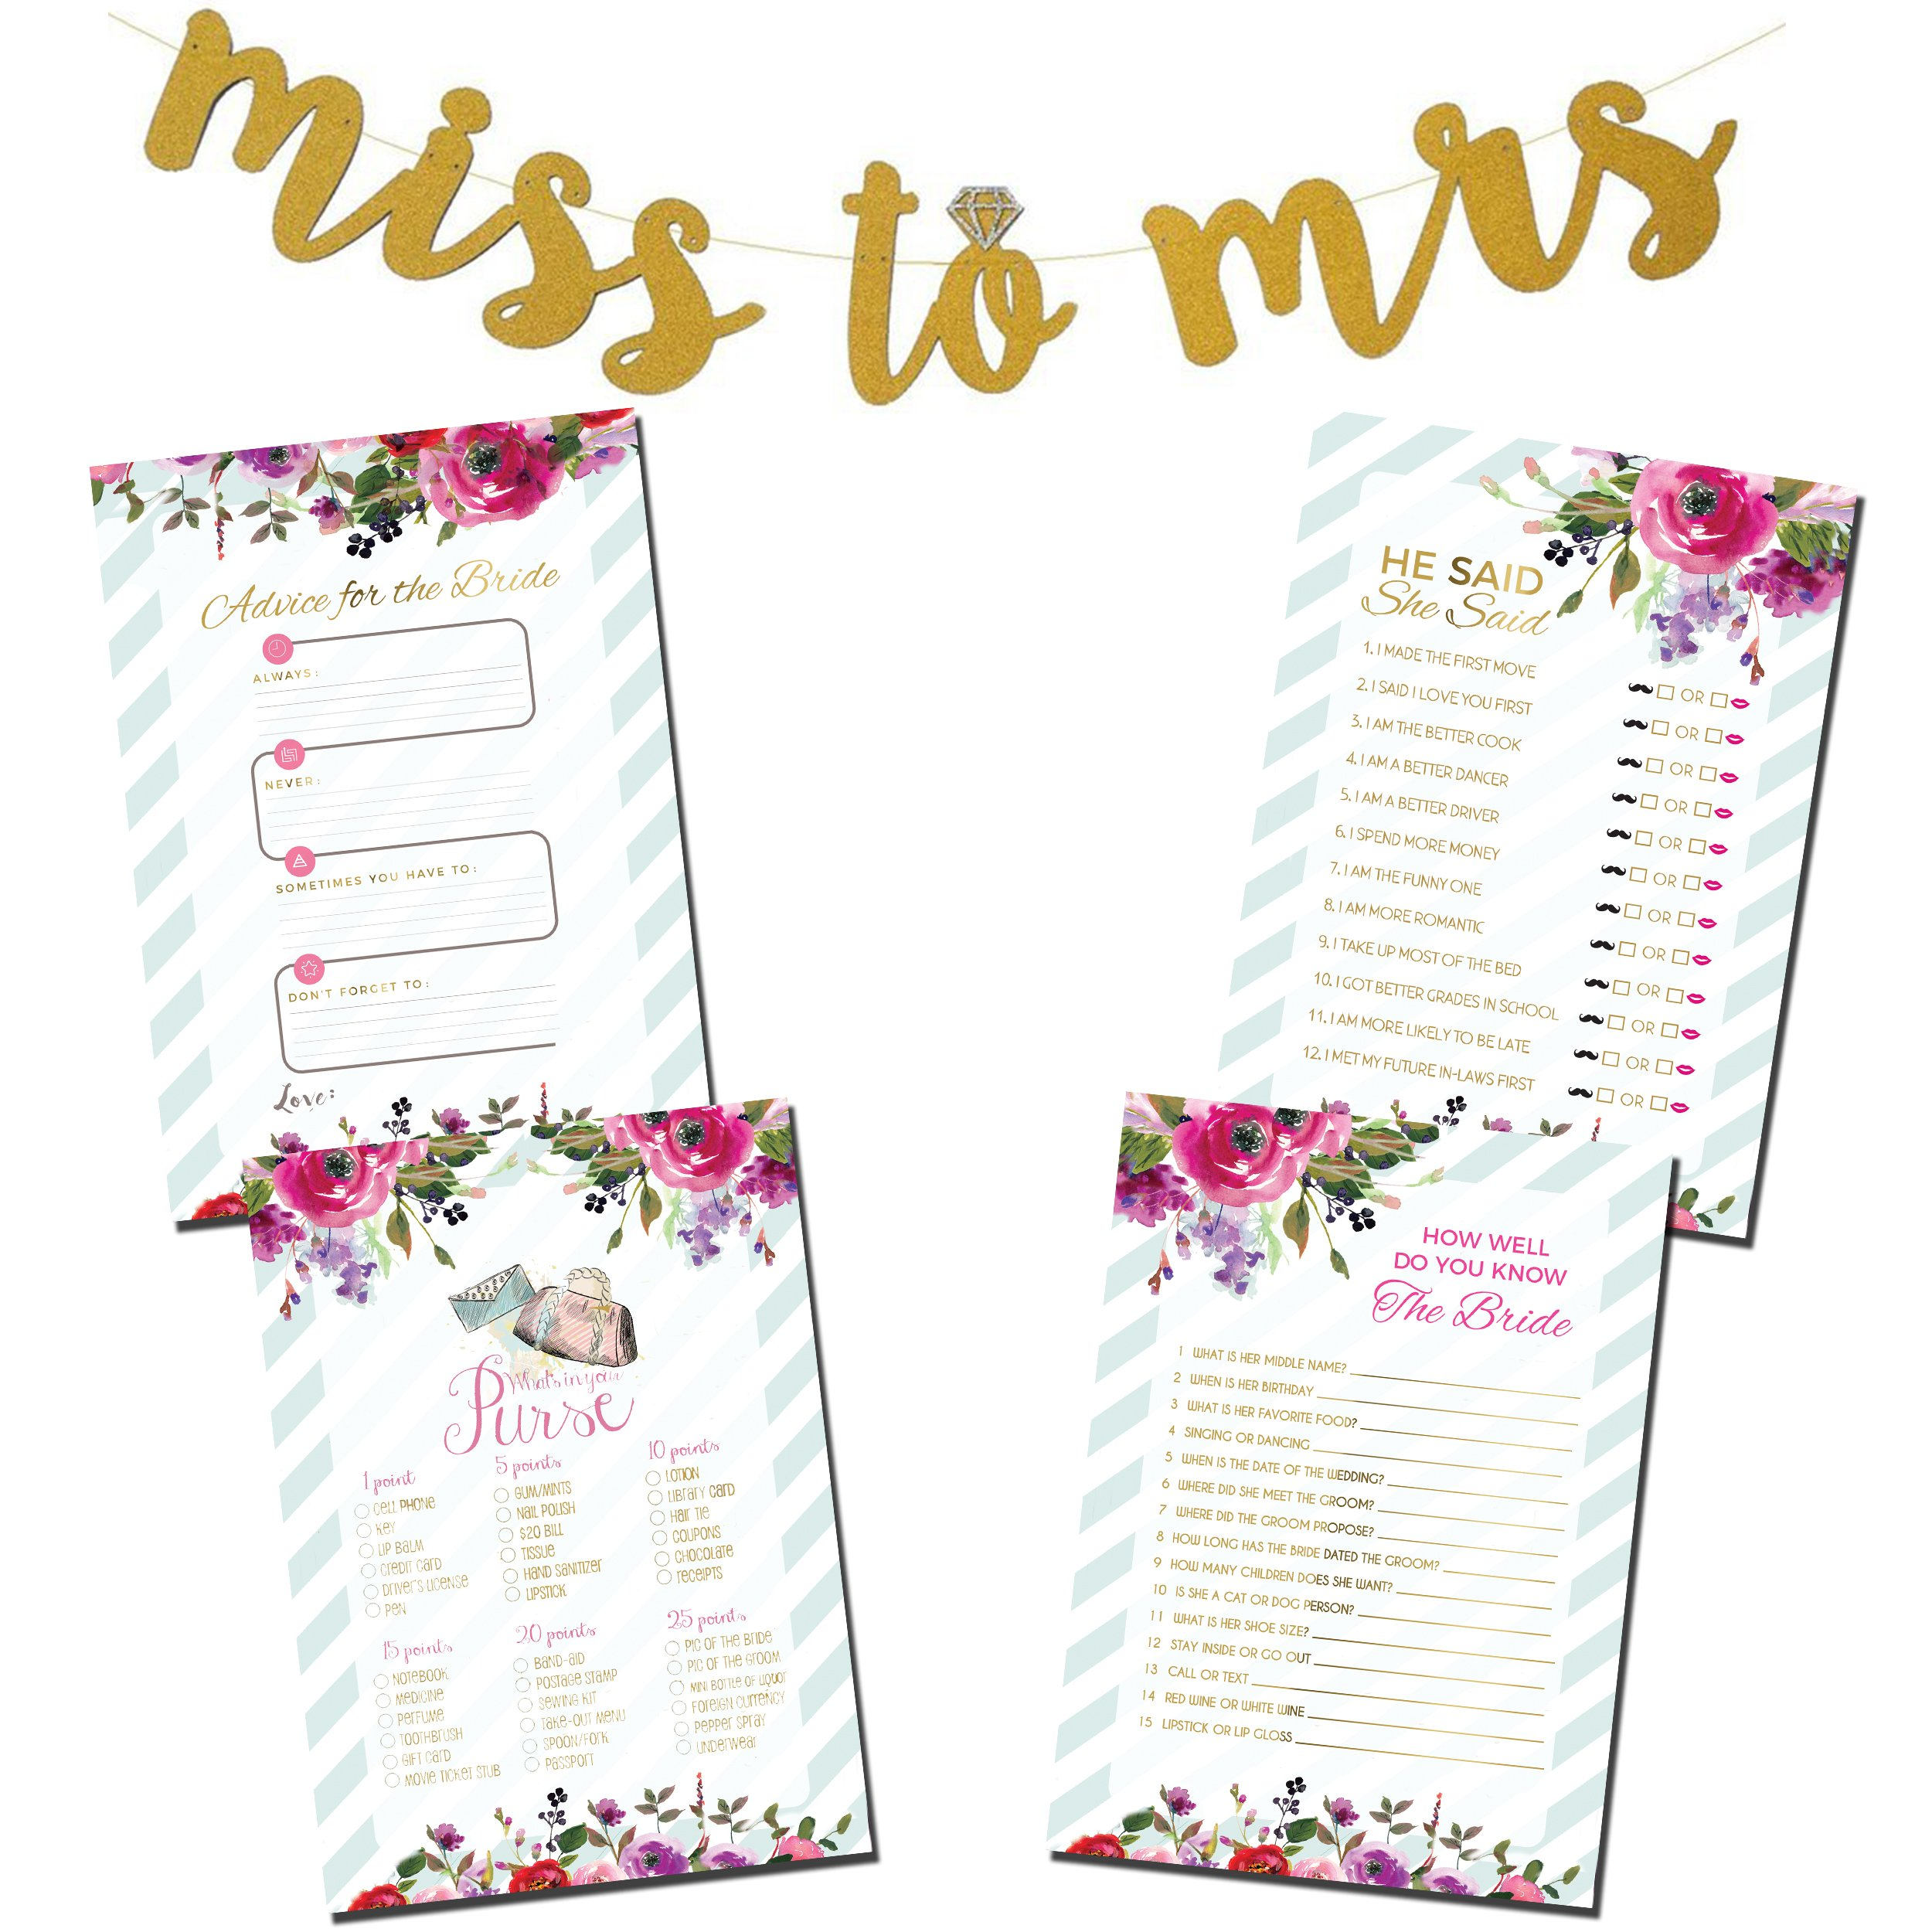 Bridal Shower Games Bundle with Bonus Miss to Mrs. Gold Glitter Banner & Advice for the Bride Cards | He Said She Said | How Well do you Know the Bride | What's in your Purse